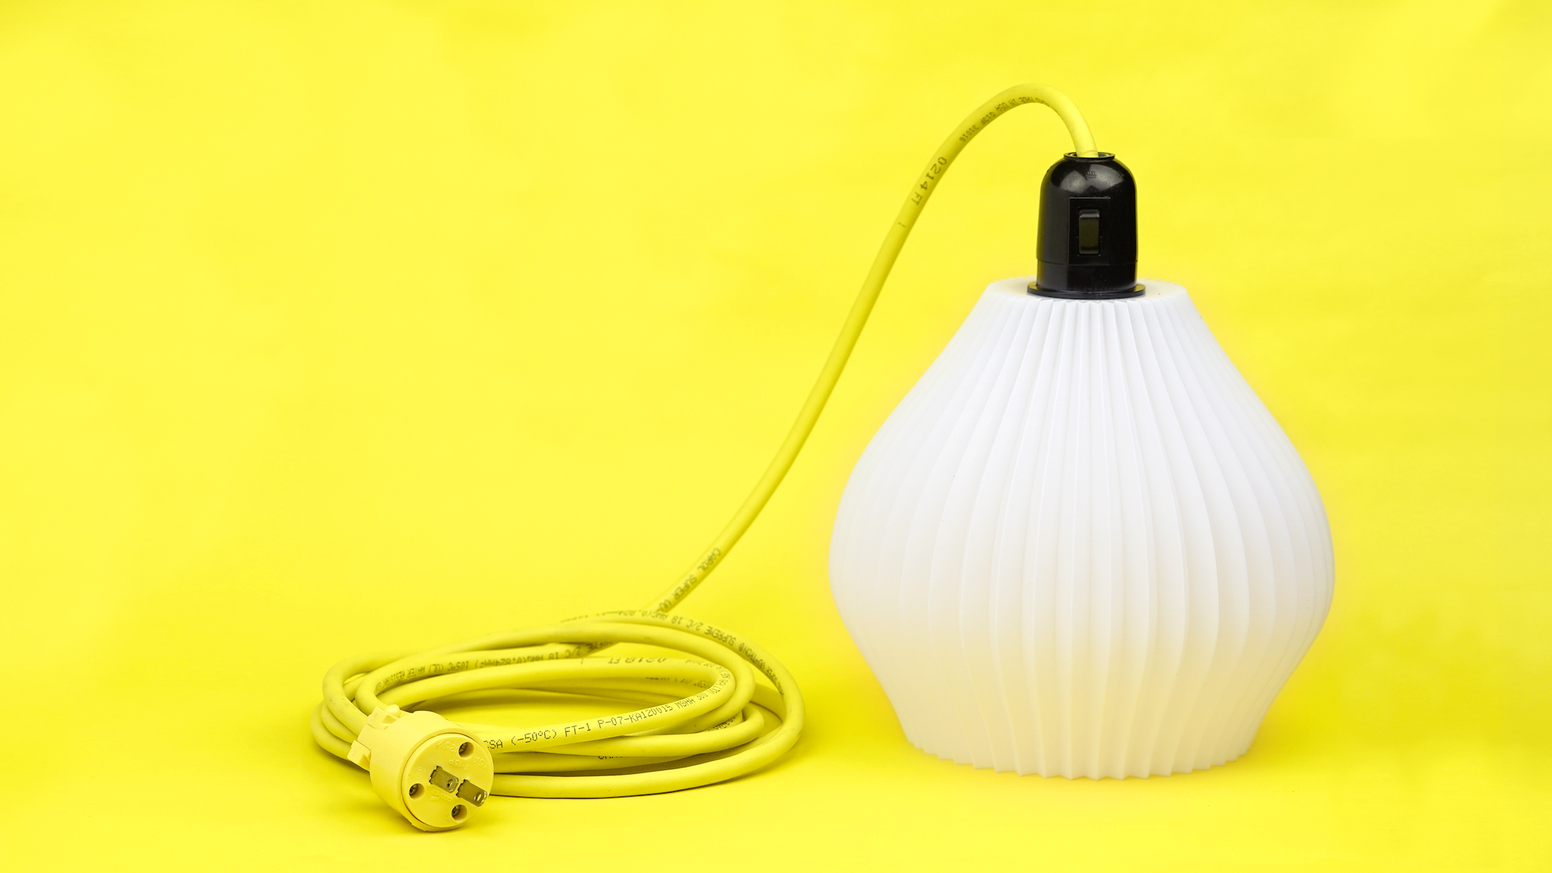 100 unique limited edition table top lamps.